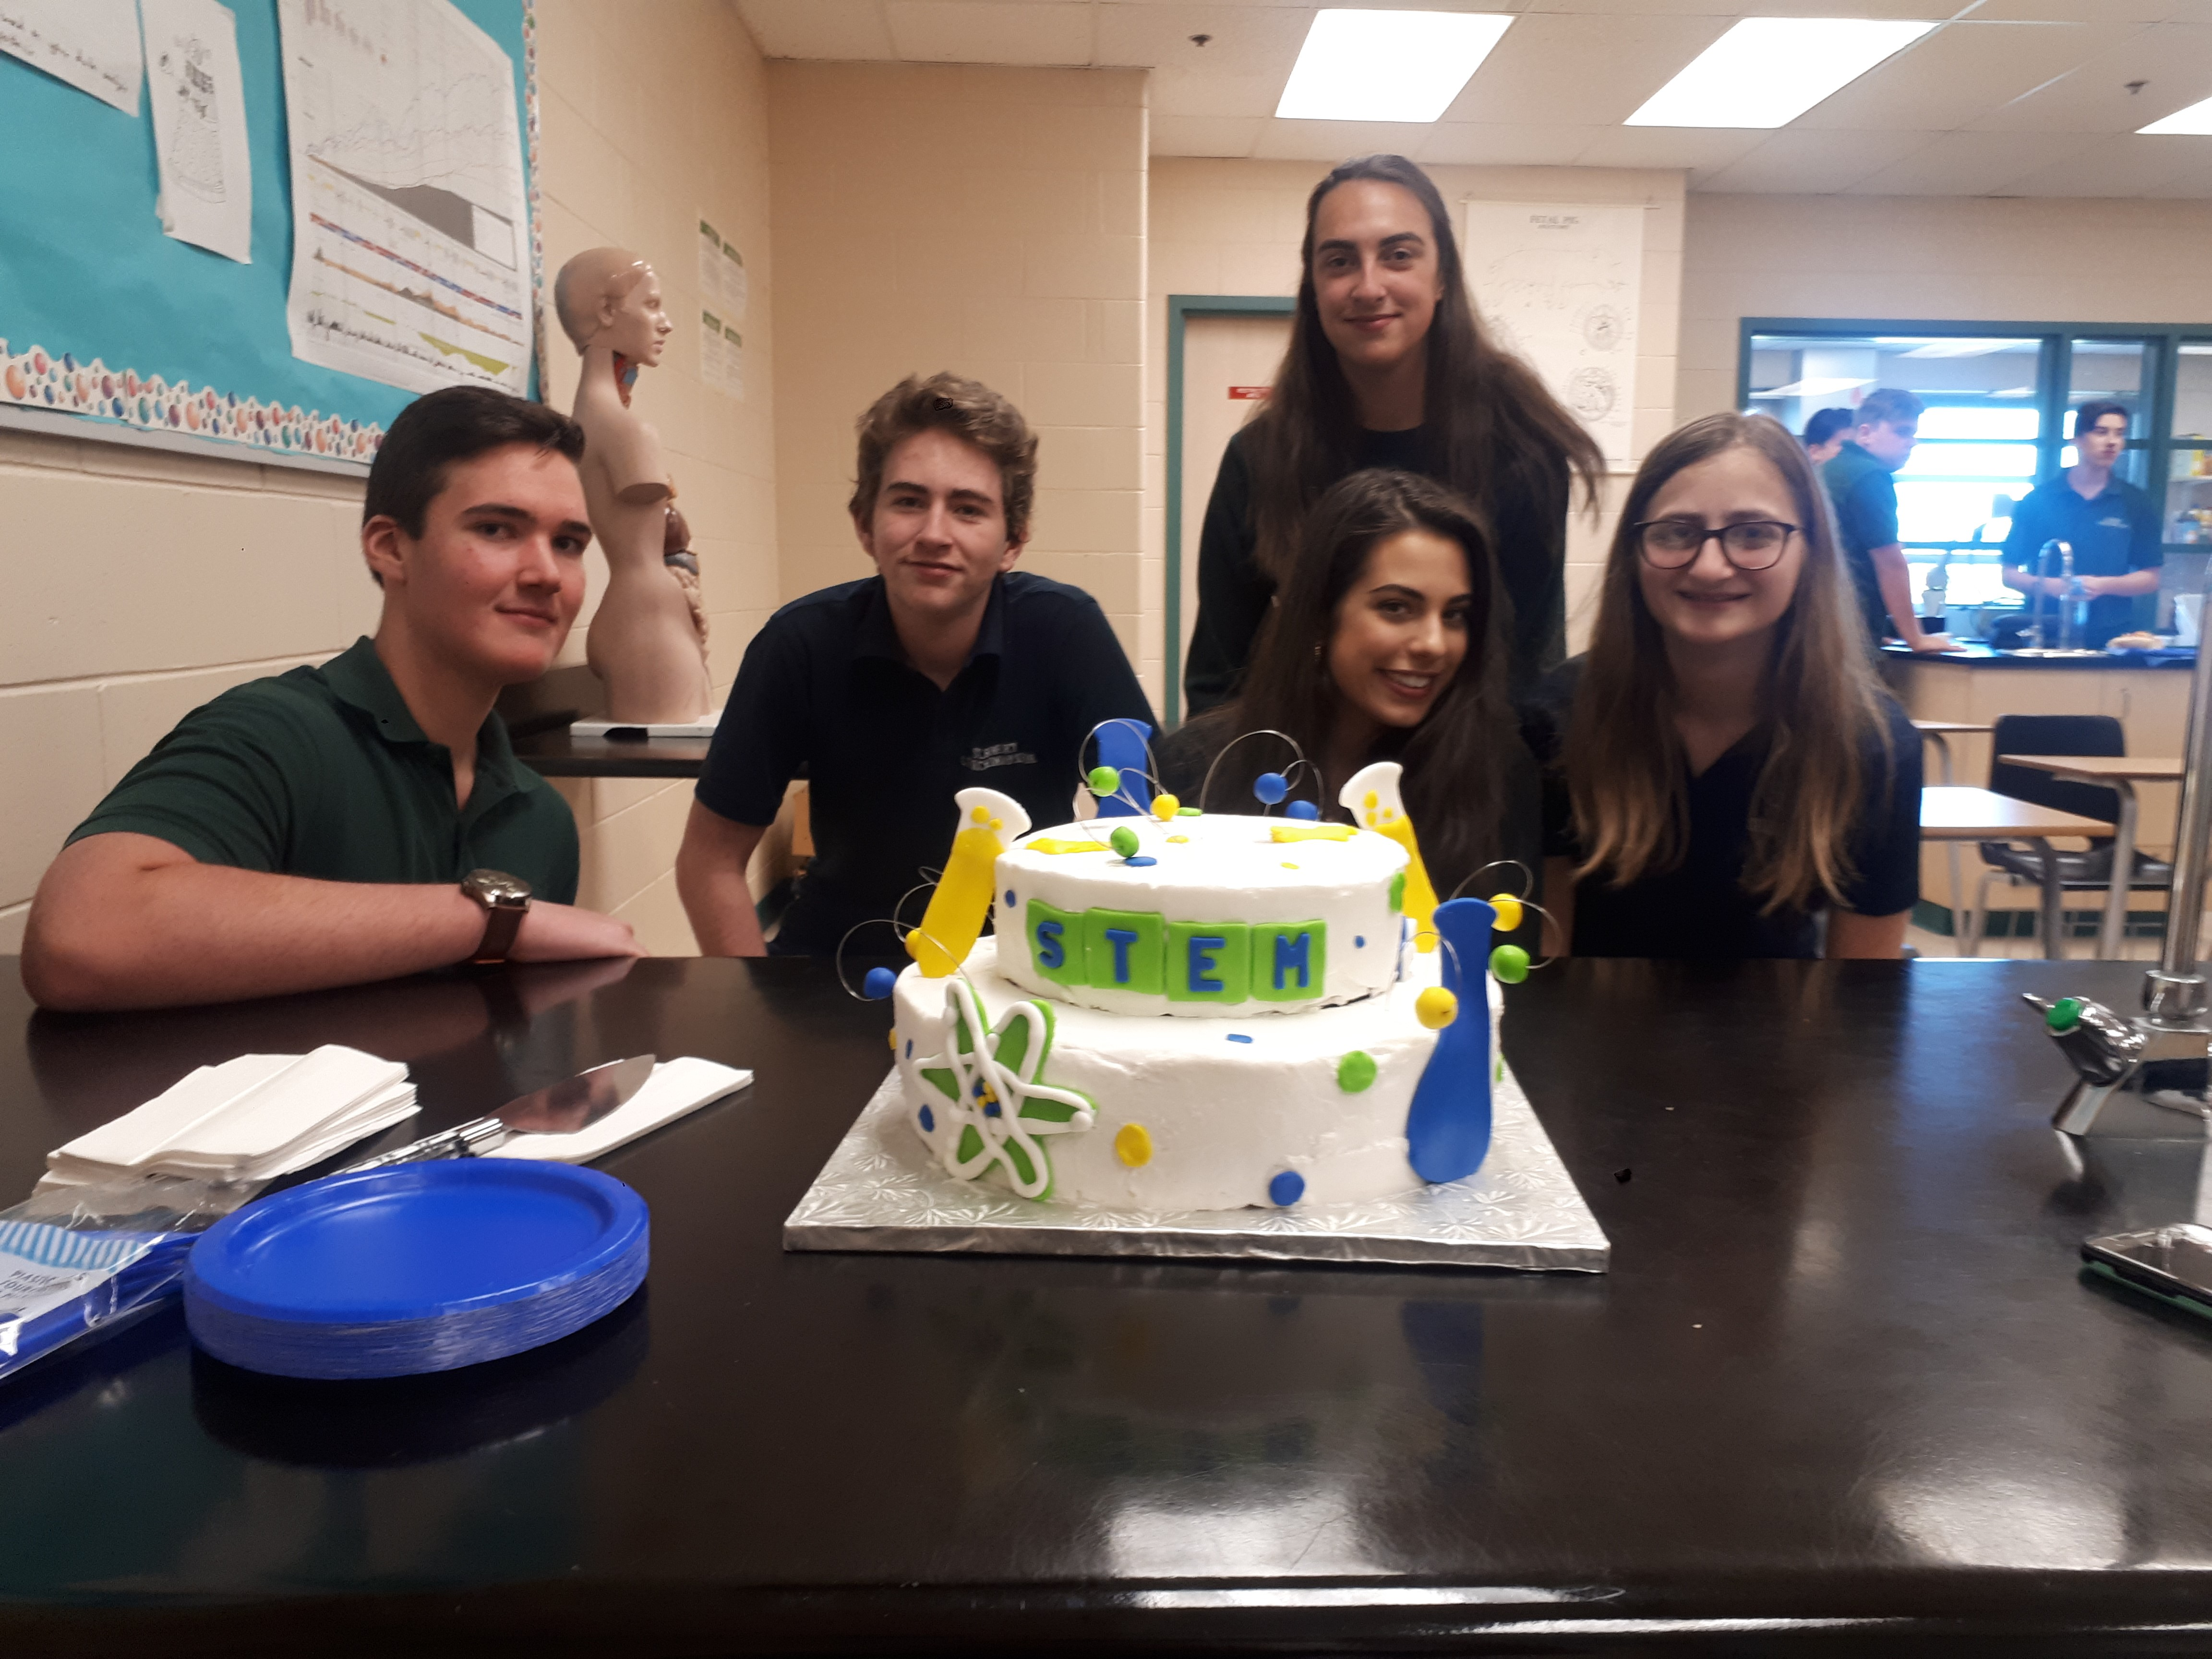 Noah Forteski, Ethan Hodge, Adriana Cimino and Livea Donato with Erika Poirier in the background pose with the STEM Club cake in foreground